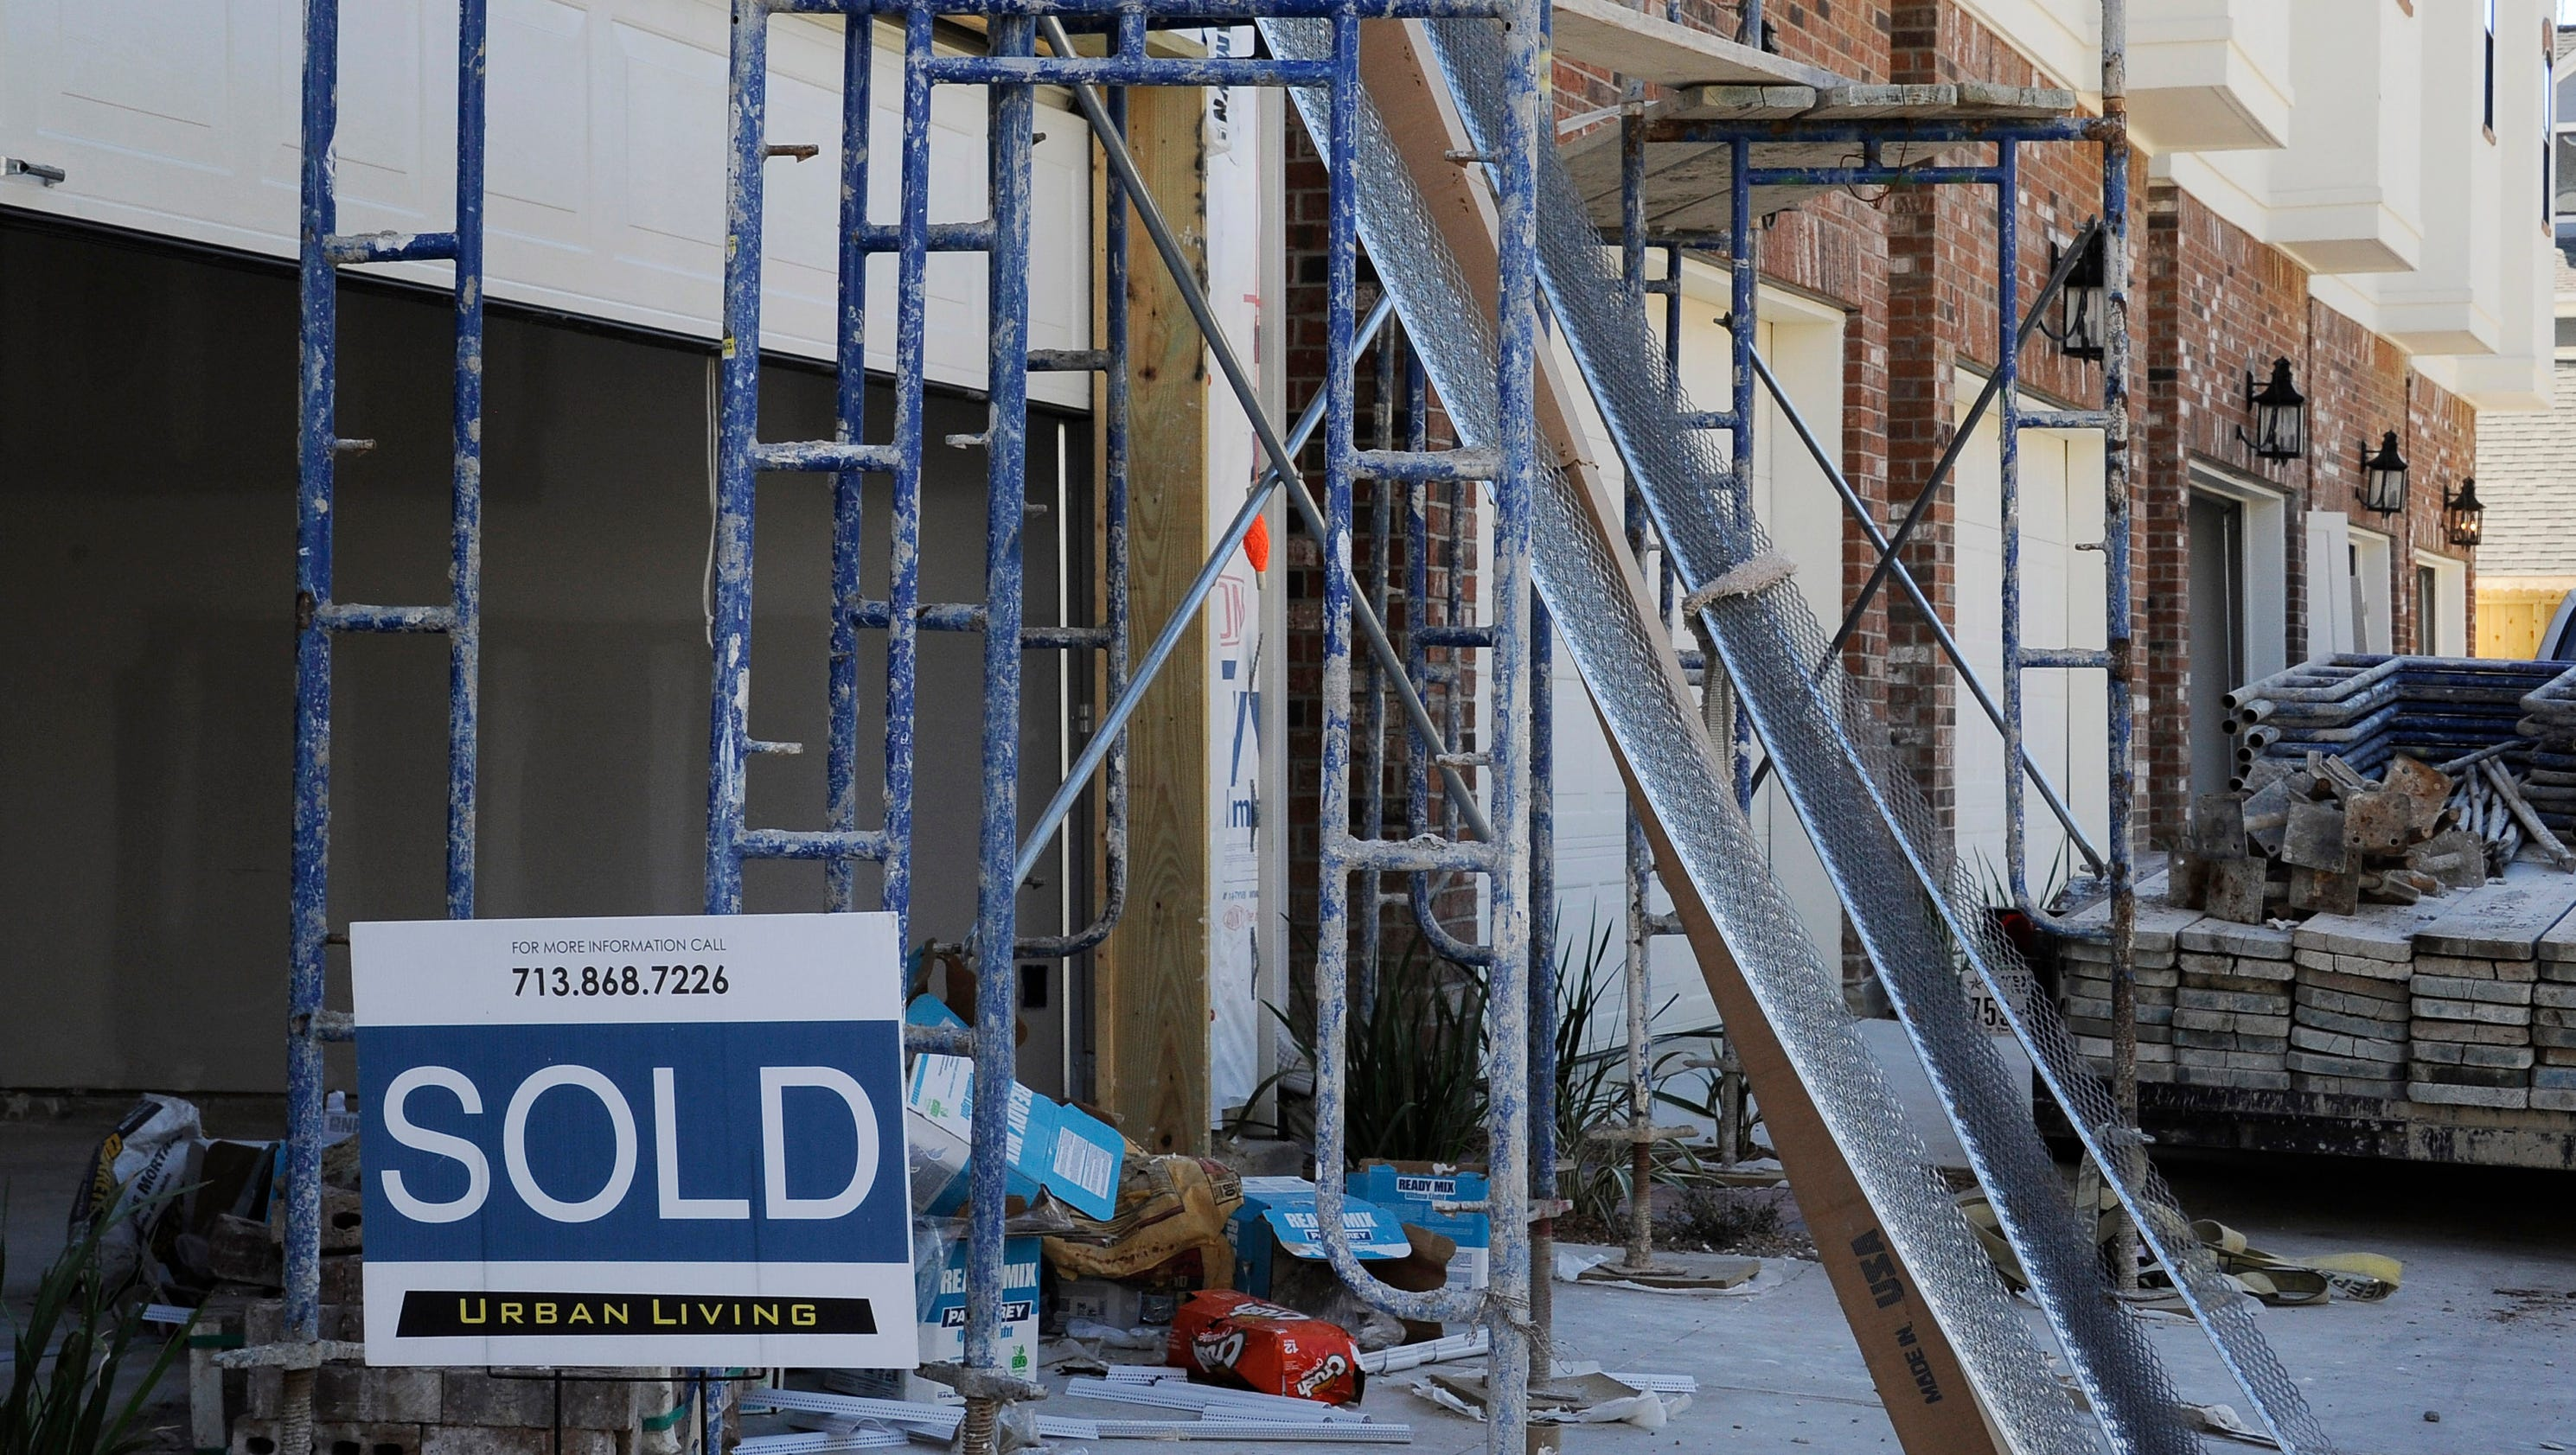 New-home sales hit 10-month low as mortgage rates rise